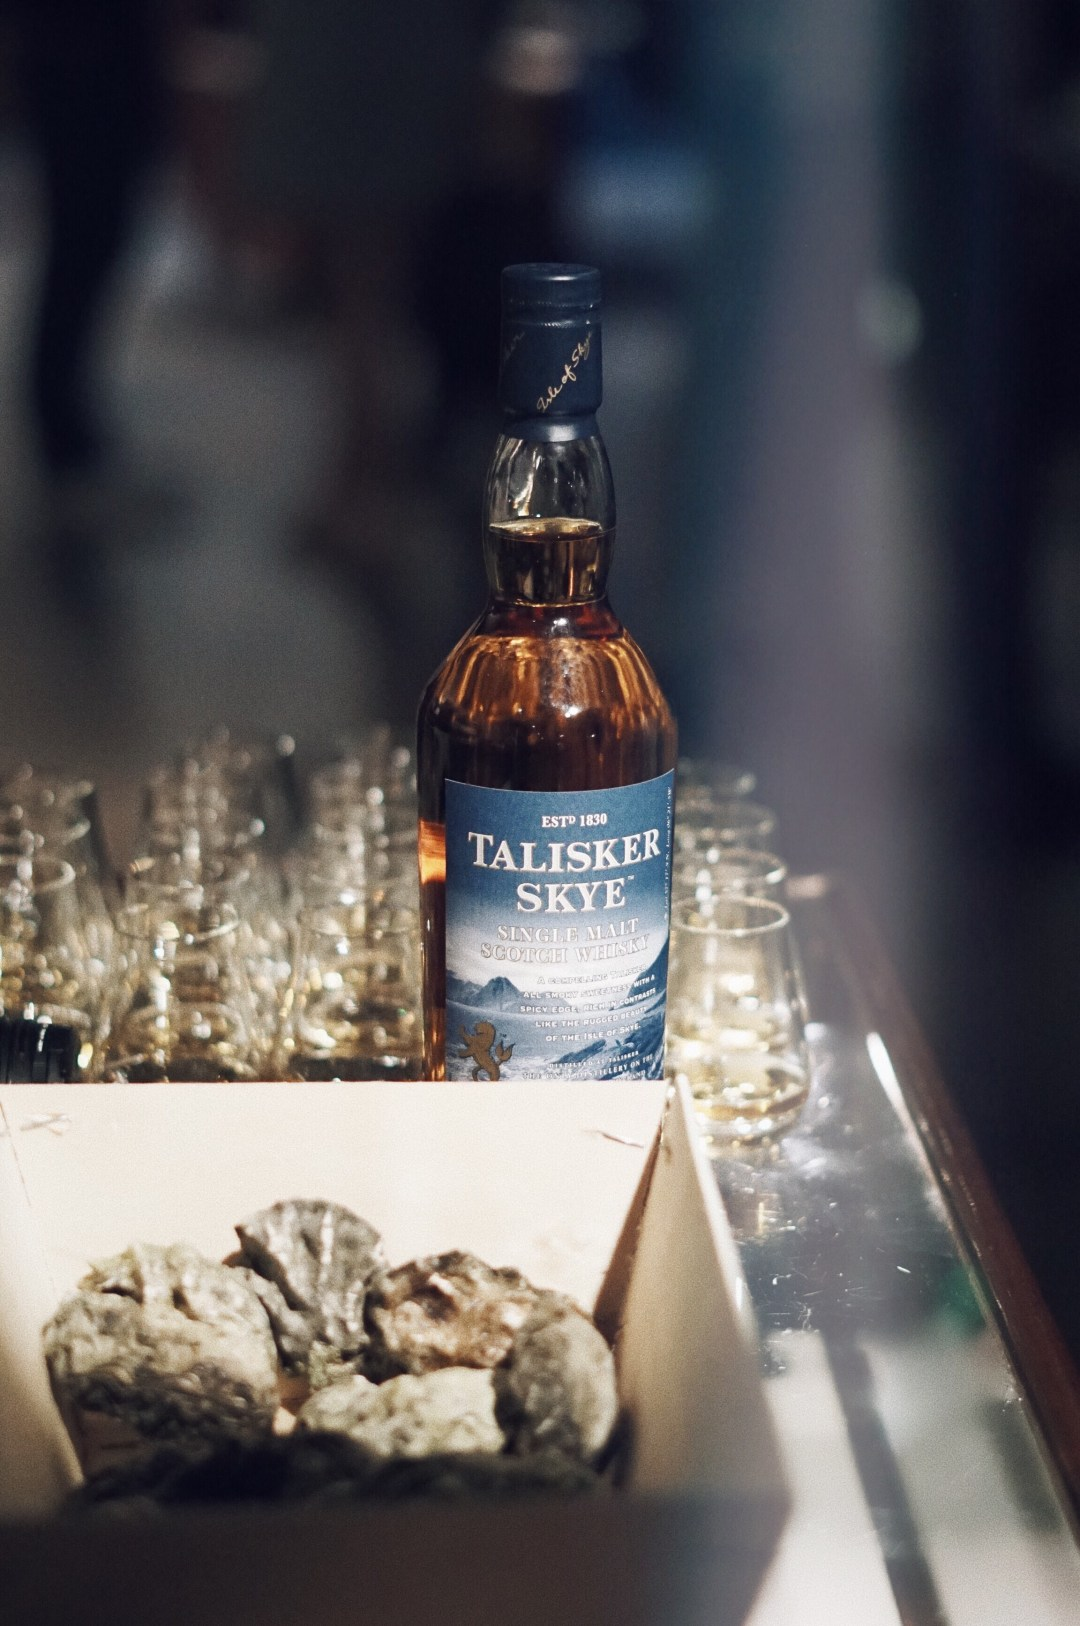 Oliver Sweeney store in Covent Garden. Talisker Scotch Whisky and Oysters by Oystermen. Blog by Skirmantas Petraitis.